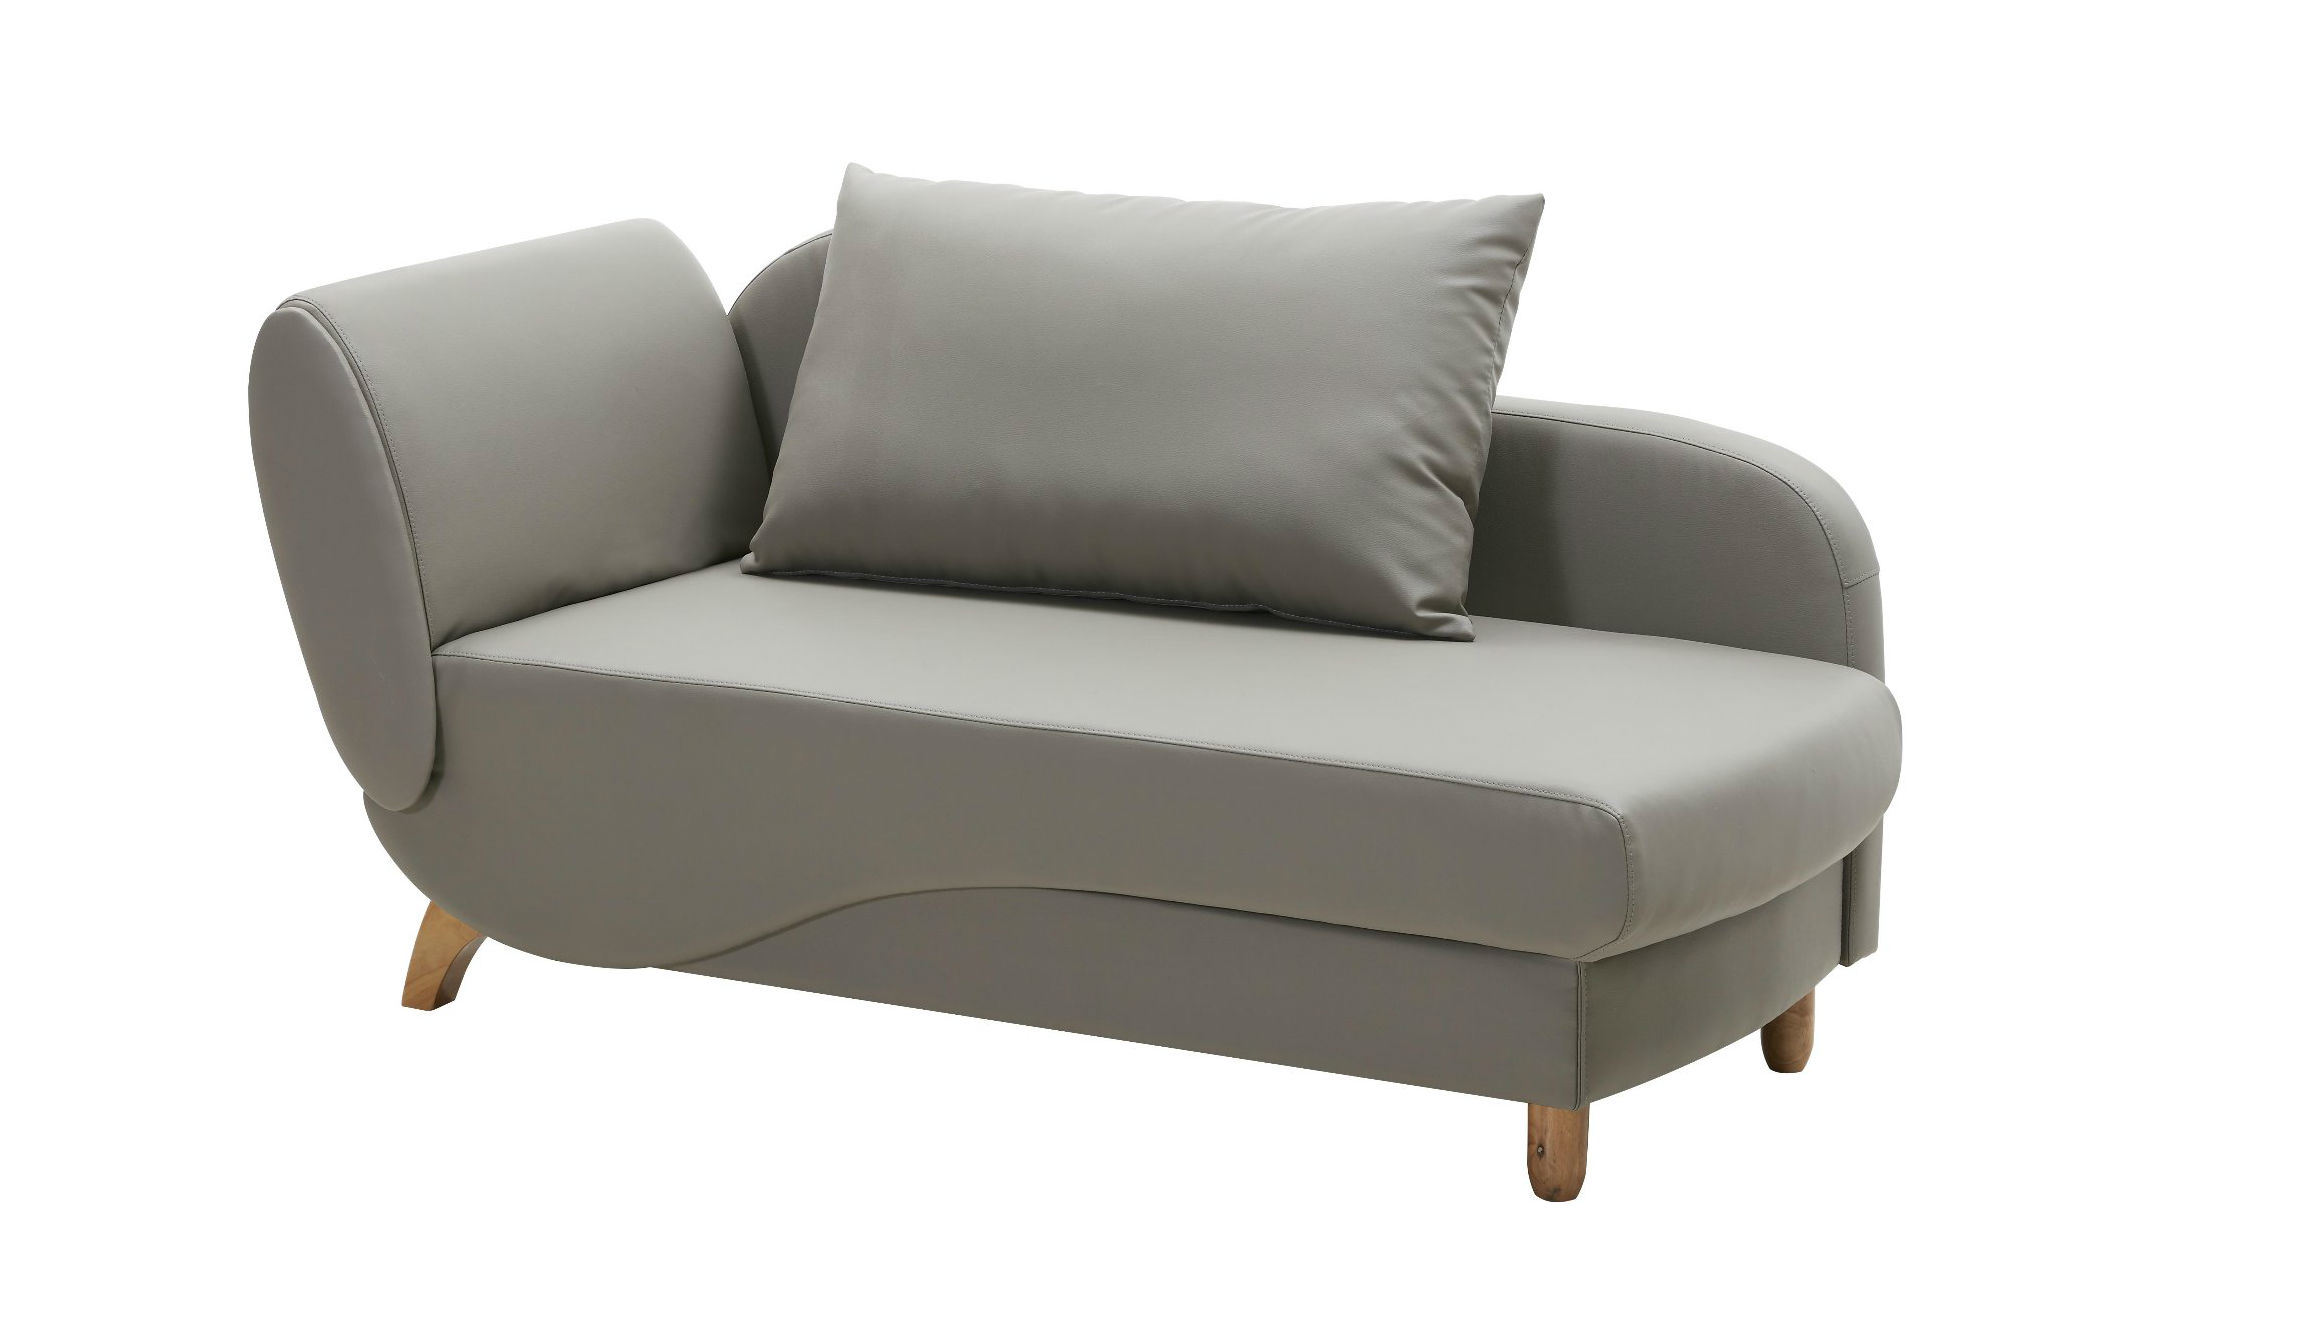 China Chaise Lounge Sofa Bed With Big Storage   China Sofabed, Modern Sofa